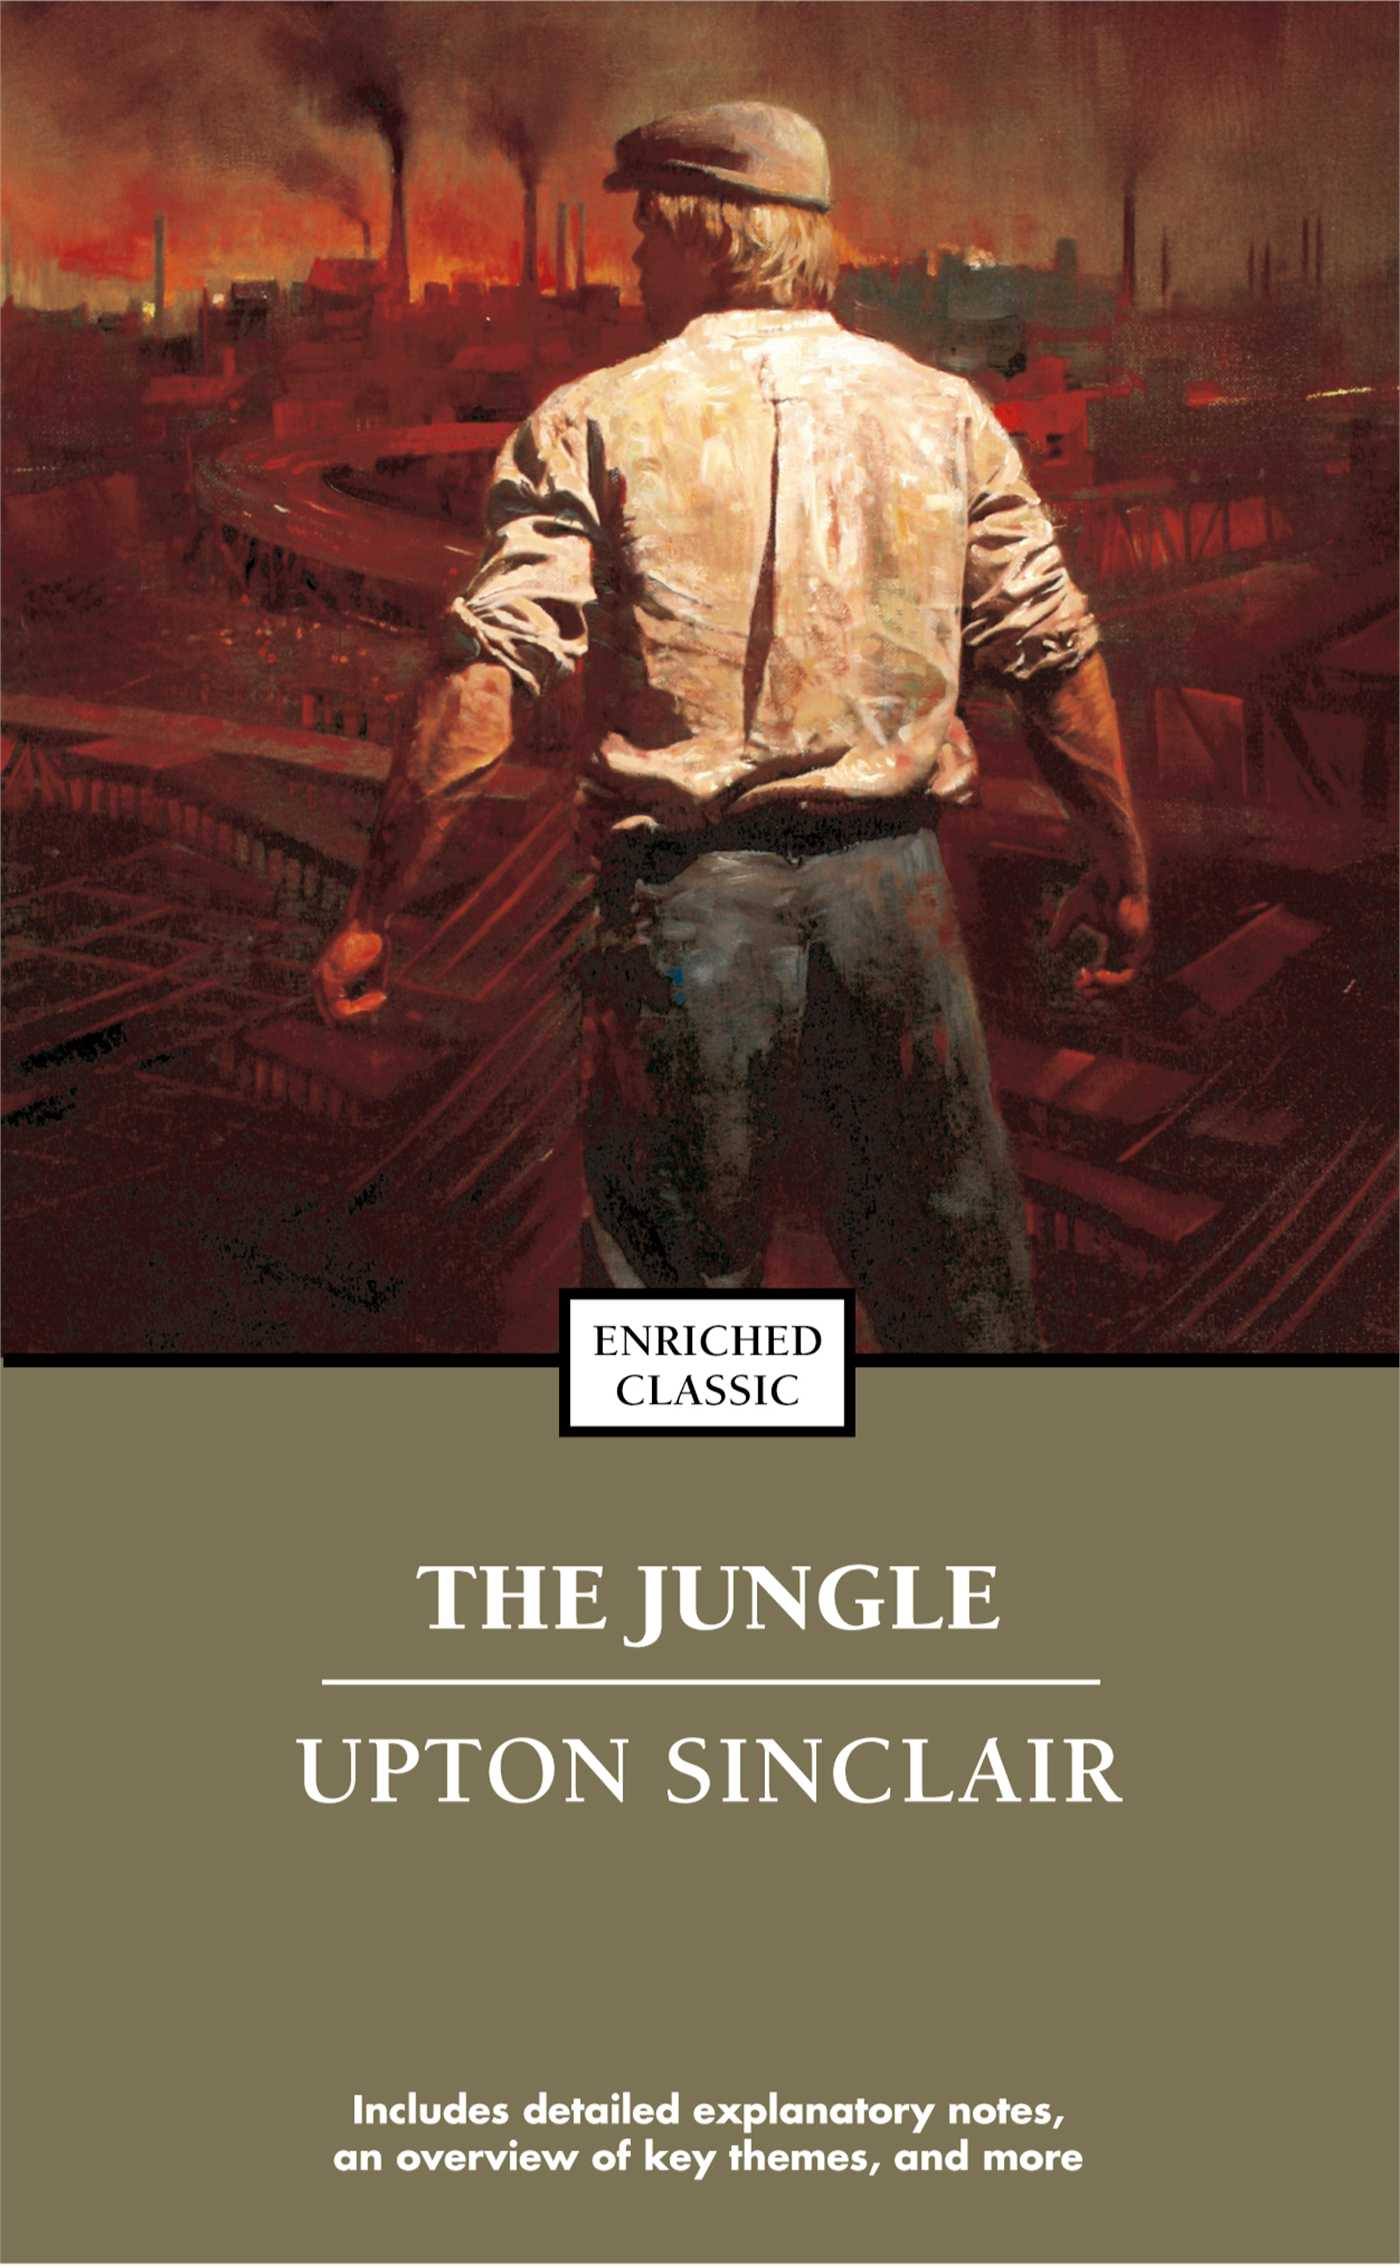 a review of the jungle by upton sinclair The book the jungle by upton sinclair has shown many aspects of post-industrial society upton sinclair touches upon many of these aspects such as the unsanitary and generally hard working conditions, as well as various struggles for recent immigrants sinclair further mentions aspects such as the.